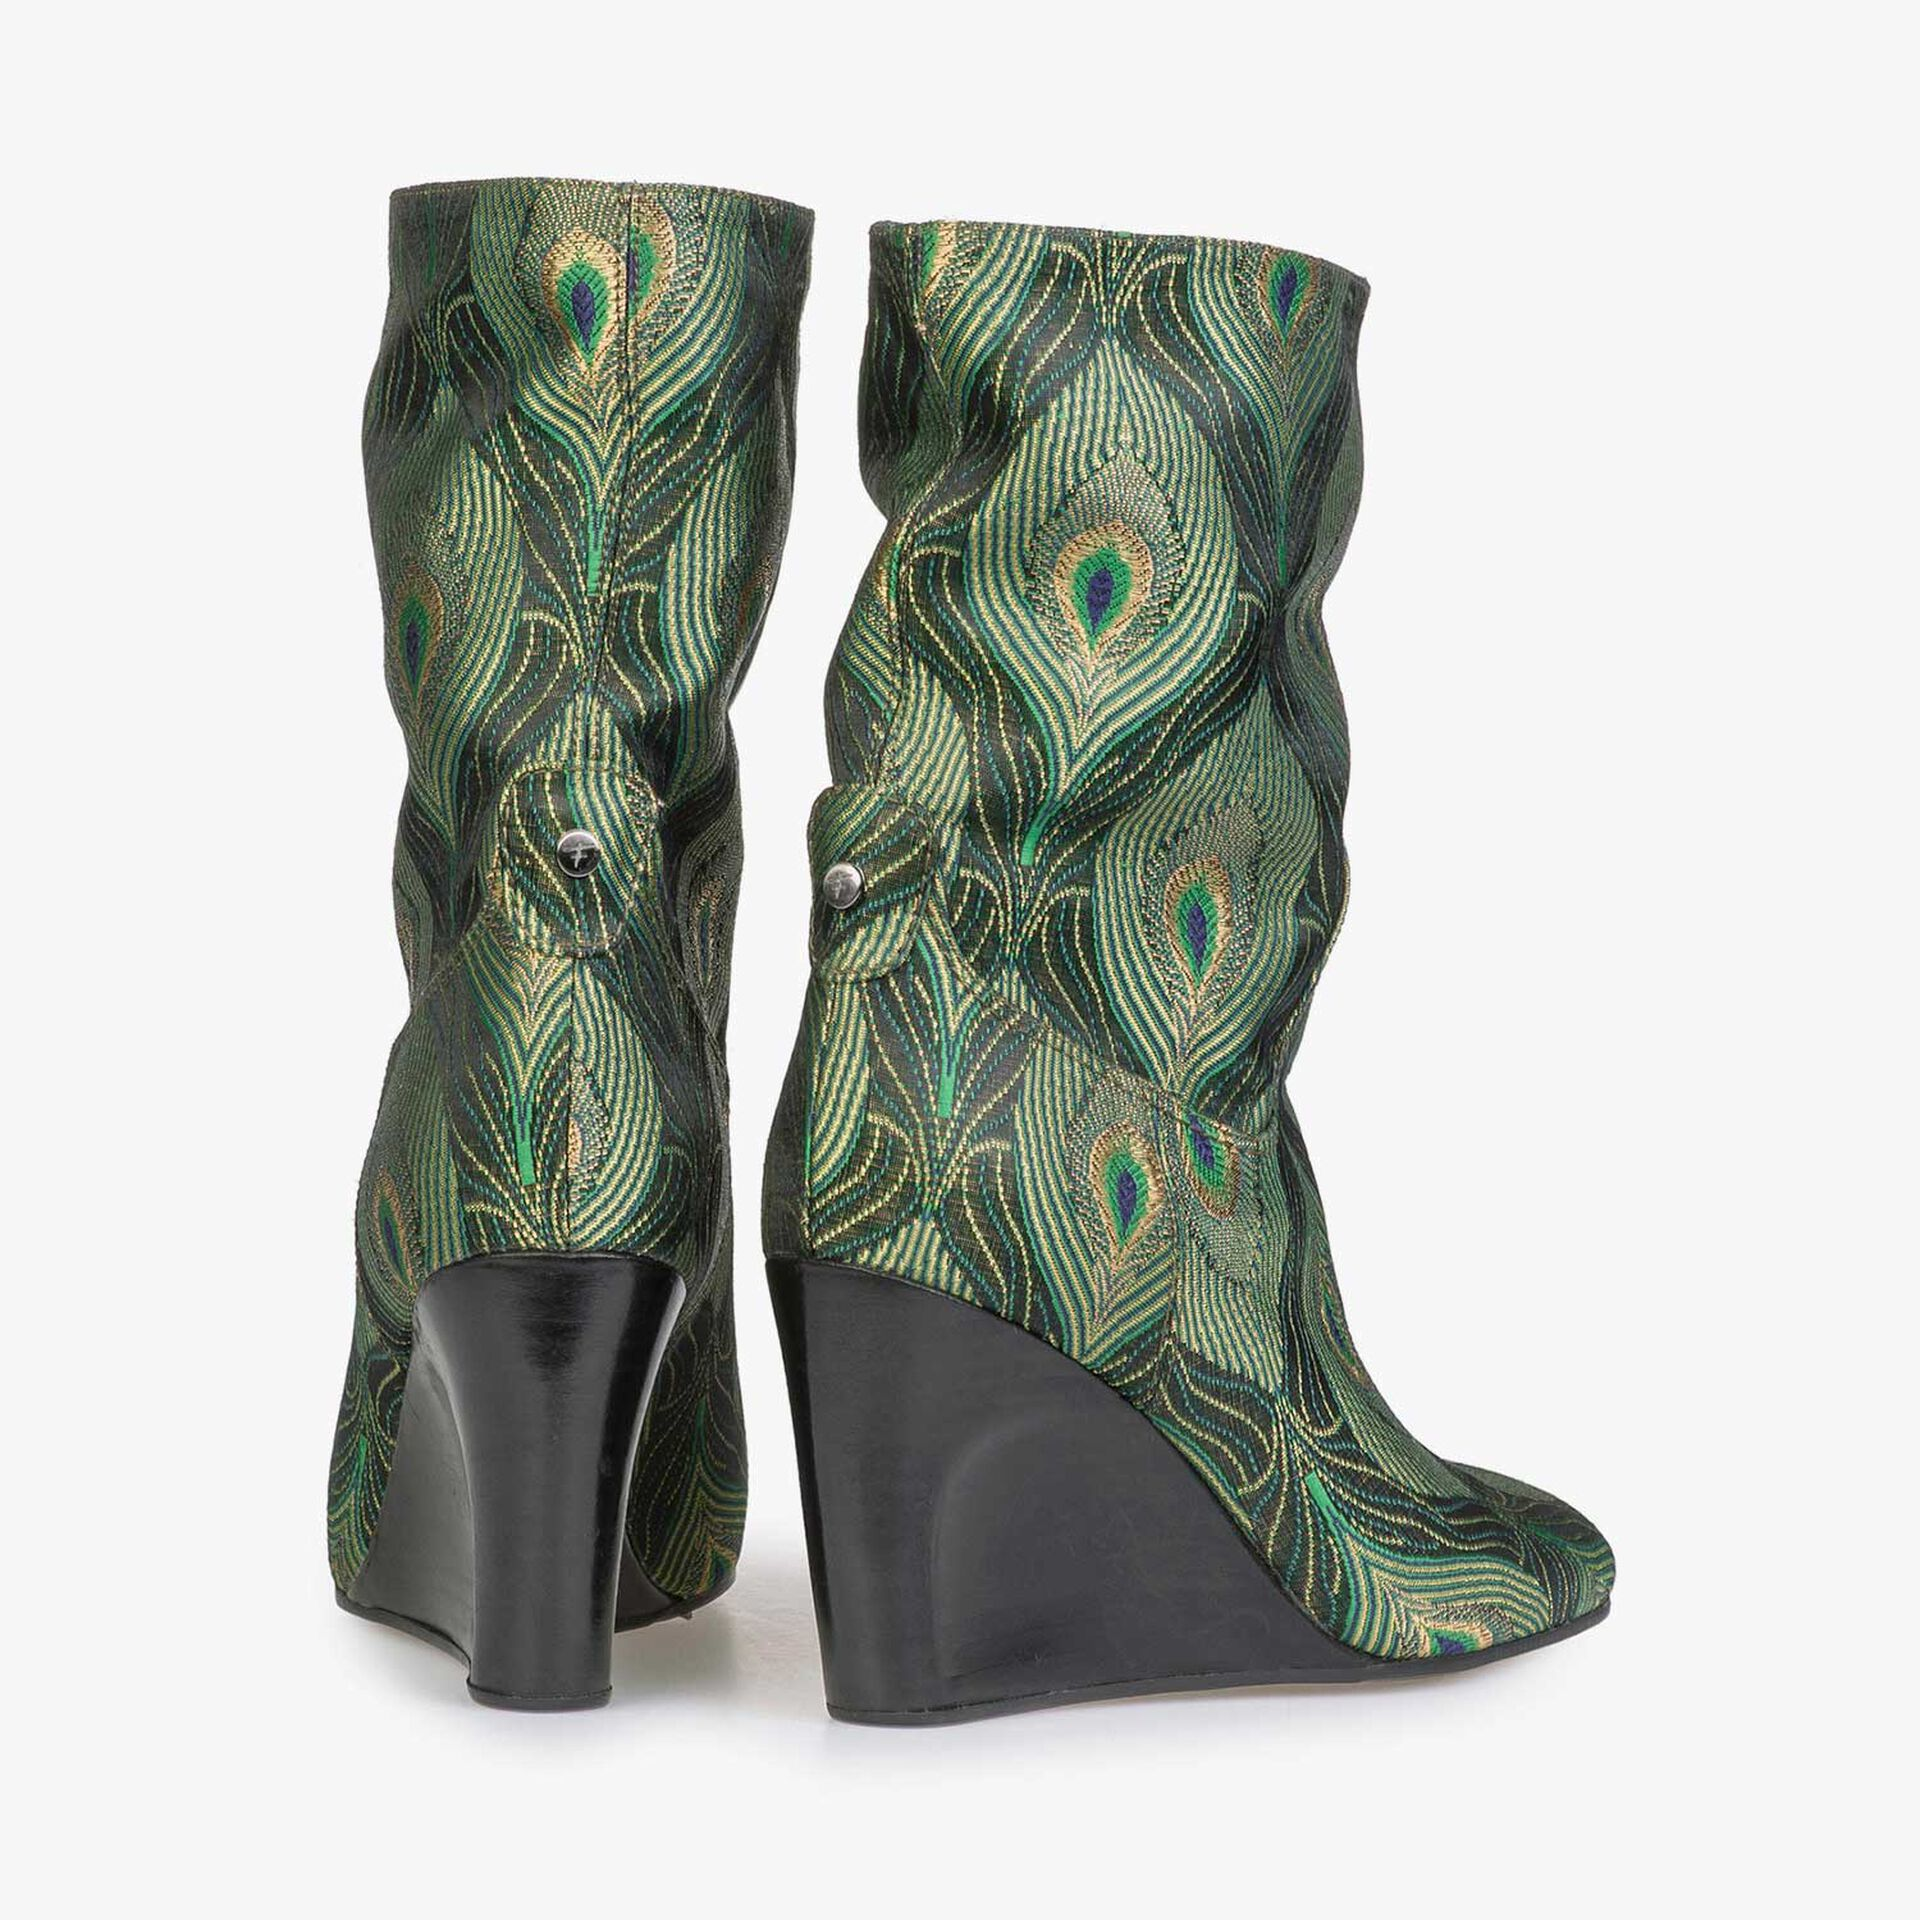 Mid-high boot with green peacock print